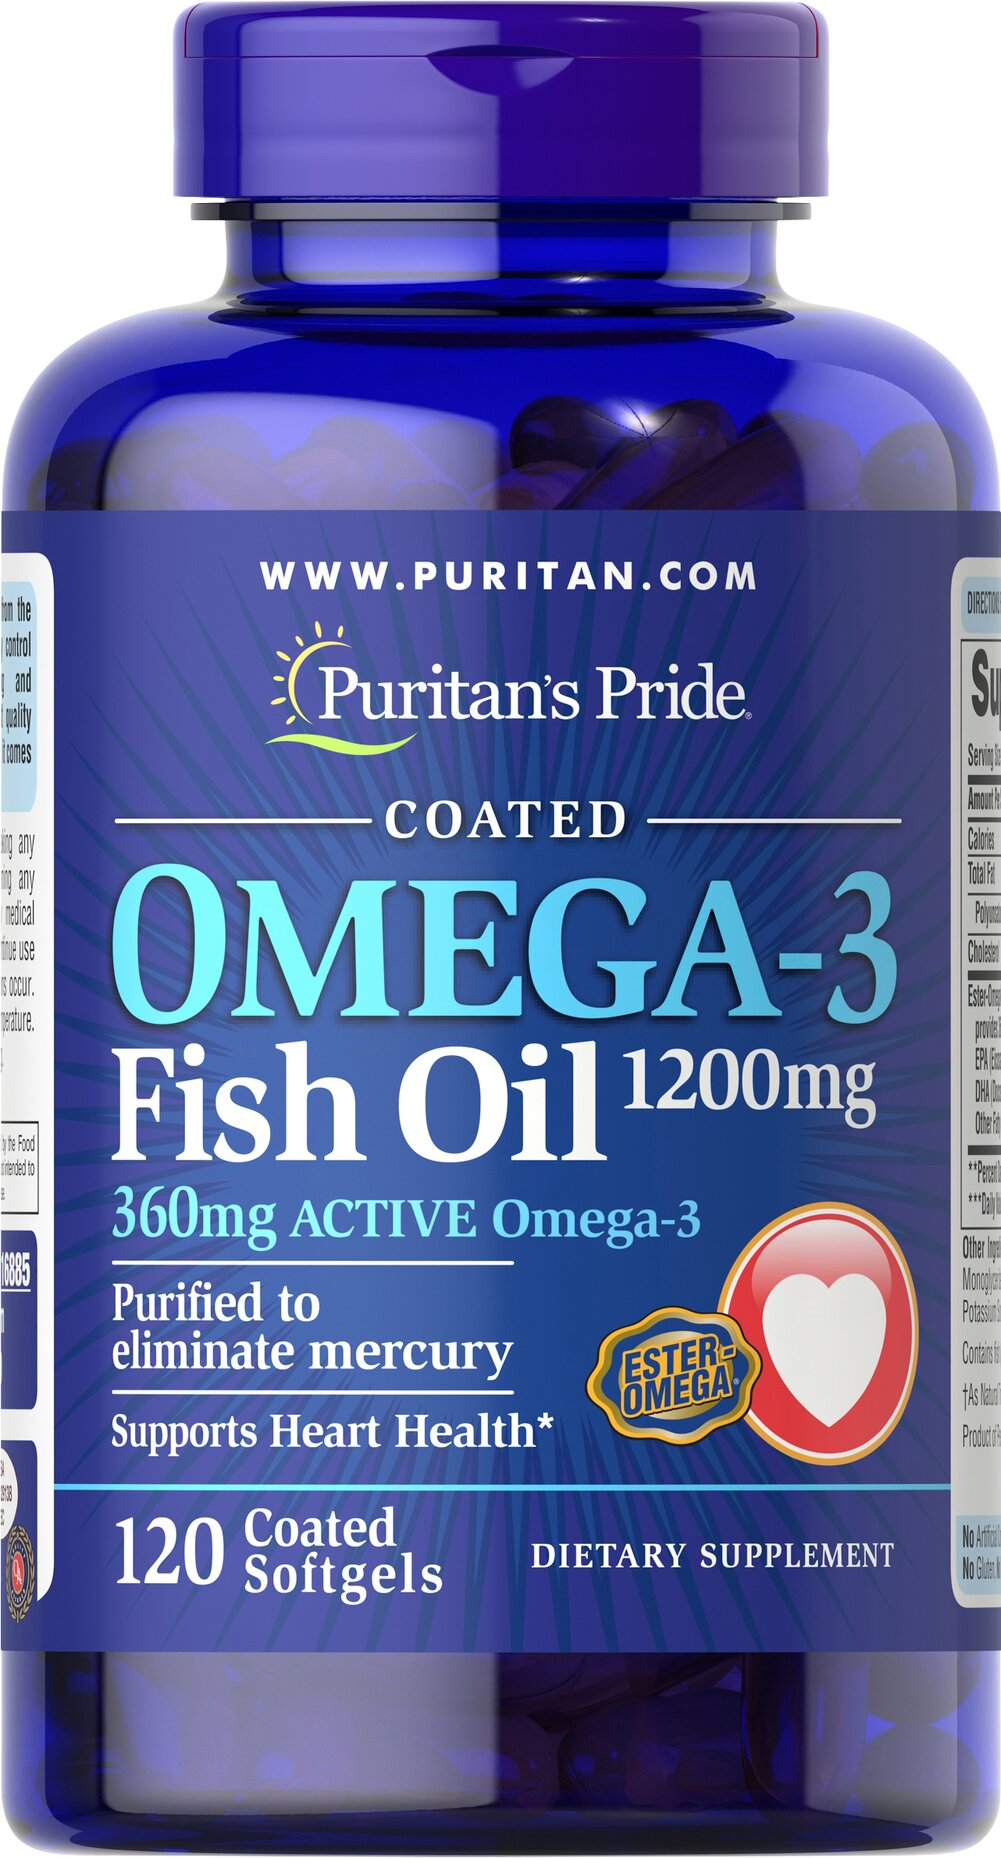 Omega-3 Fish Oil Coated 1200 mg (360 mg Active Omega-3)  120 Coated Softgels 1200 mg $23.90